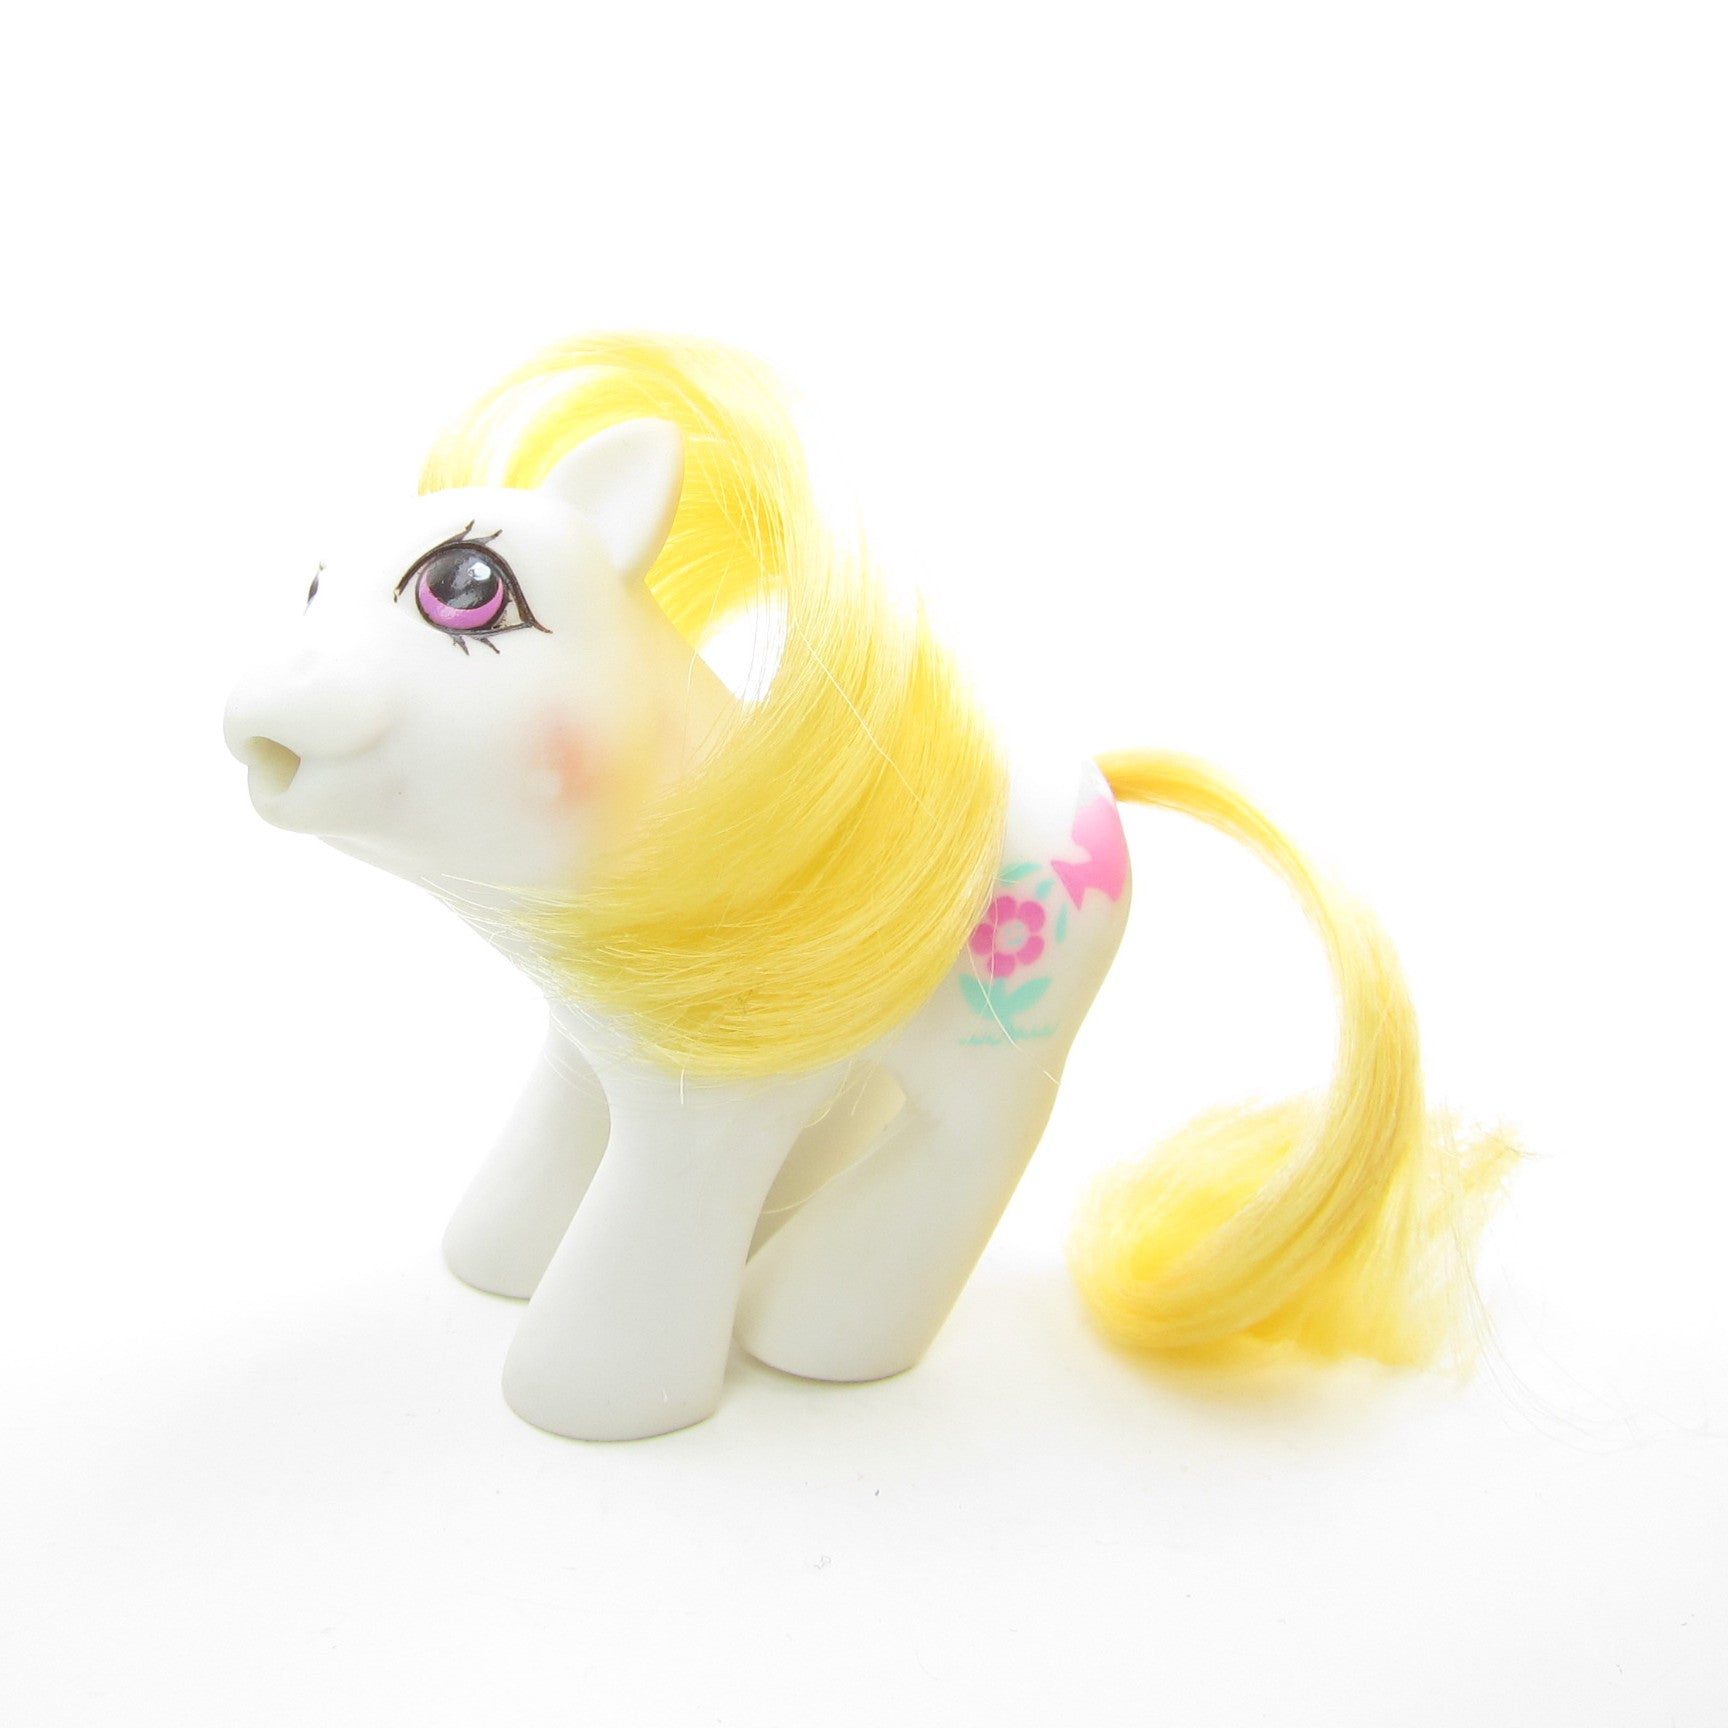 Baby Cuddles Drink 'N Wet baby My Little Pony